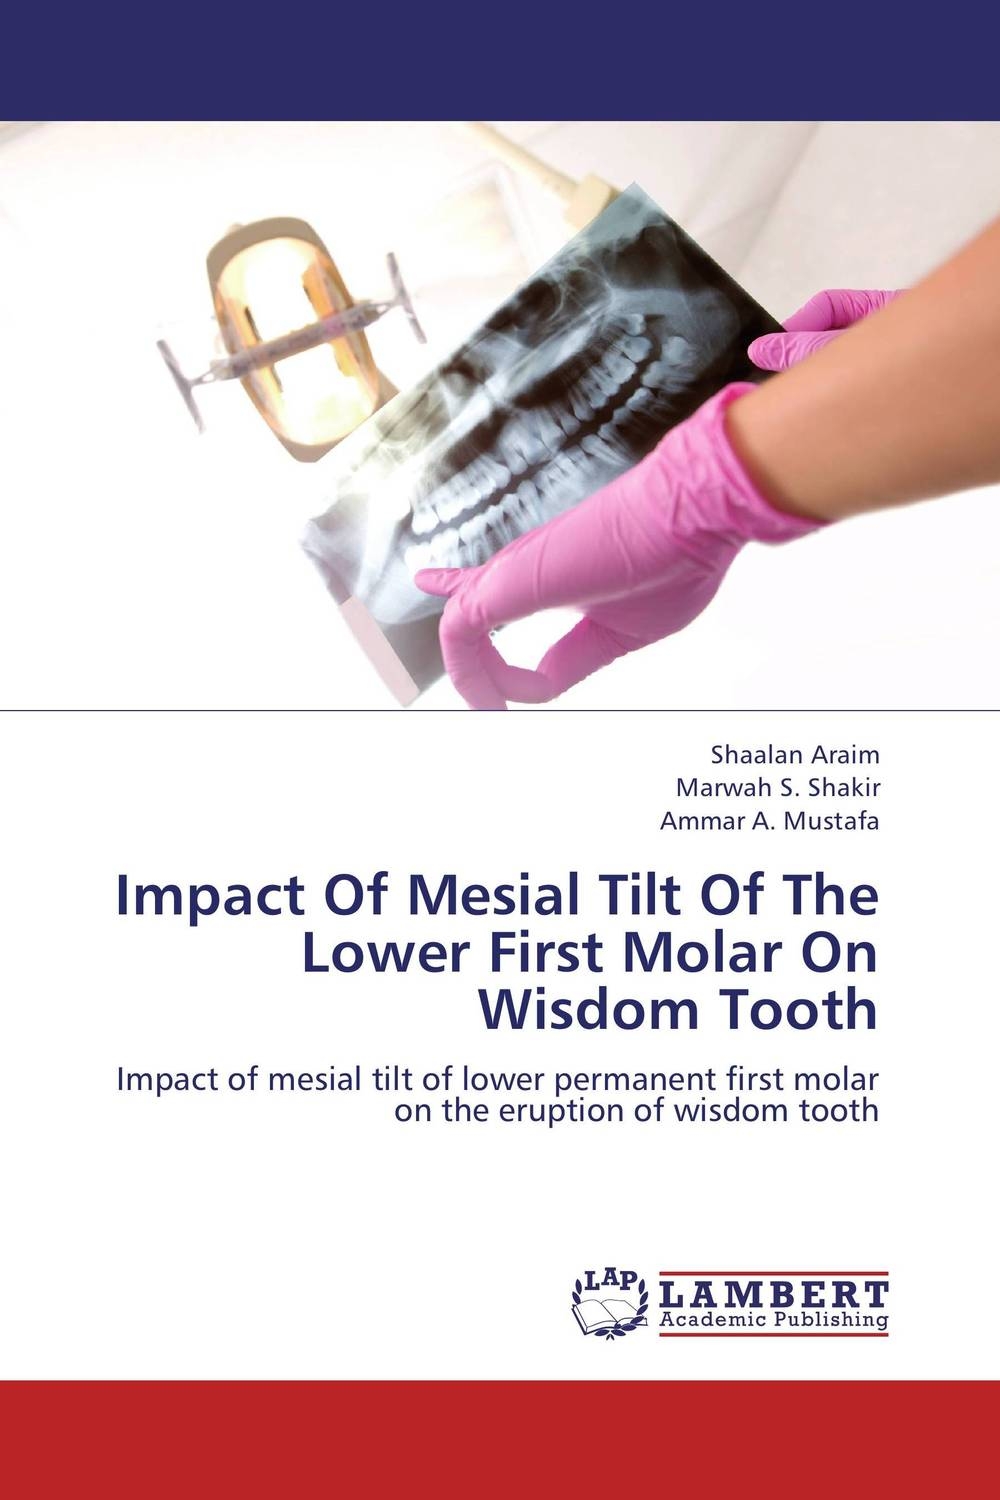 Impact Of Mesial Tilt Of The Lower First Molar On Wisdom Tooth